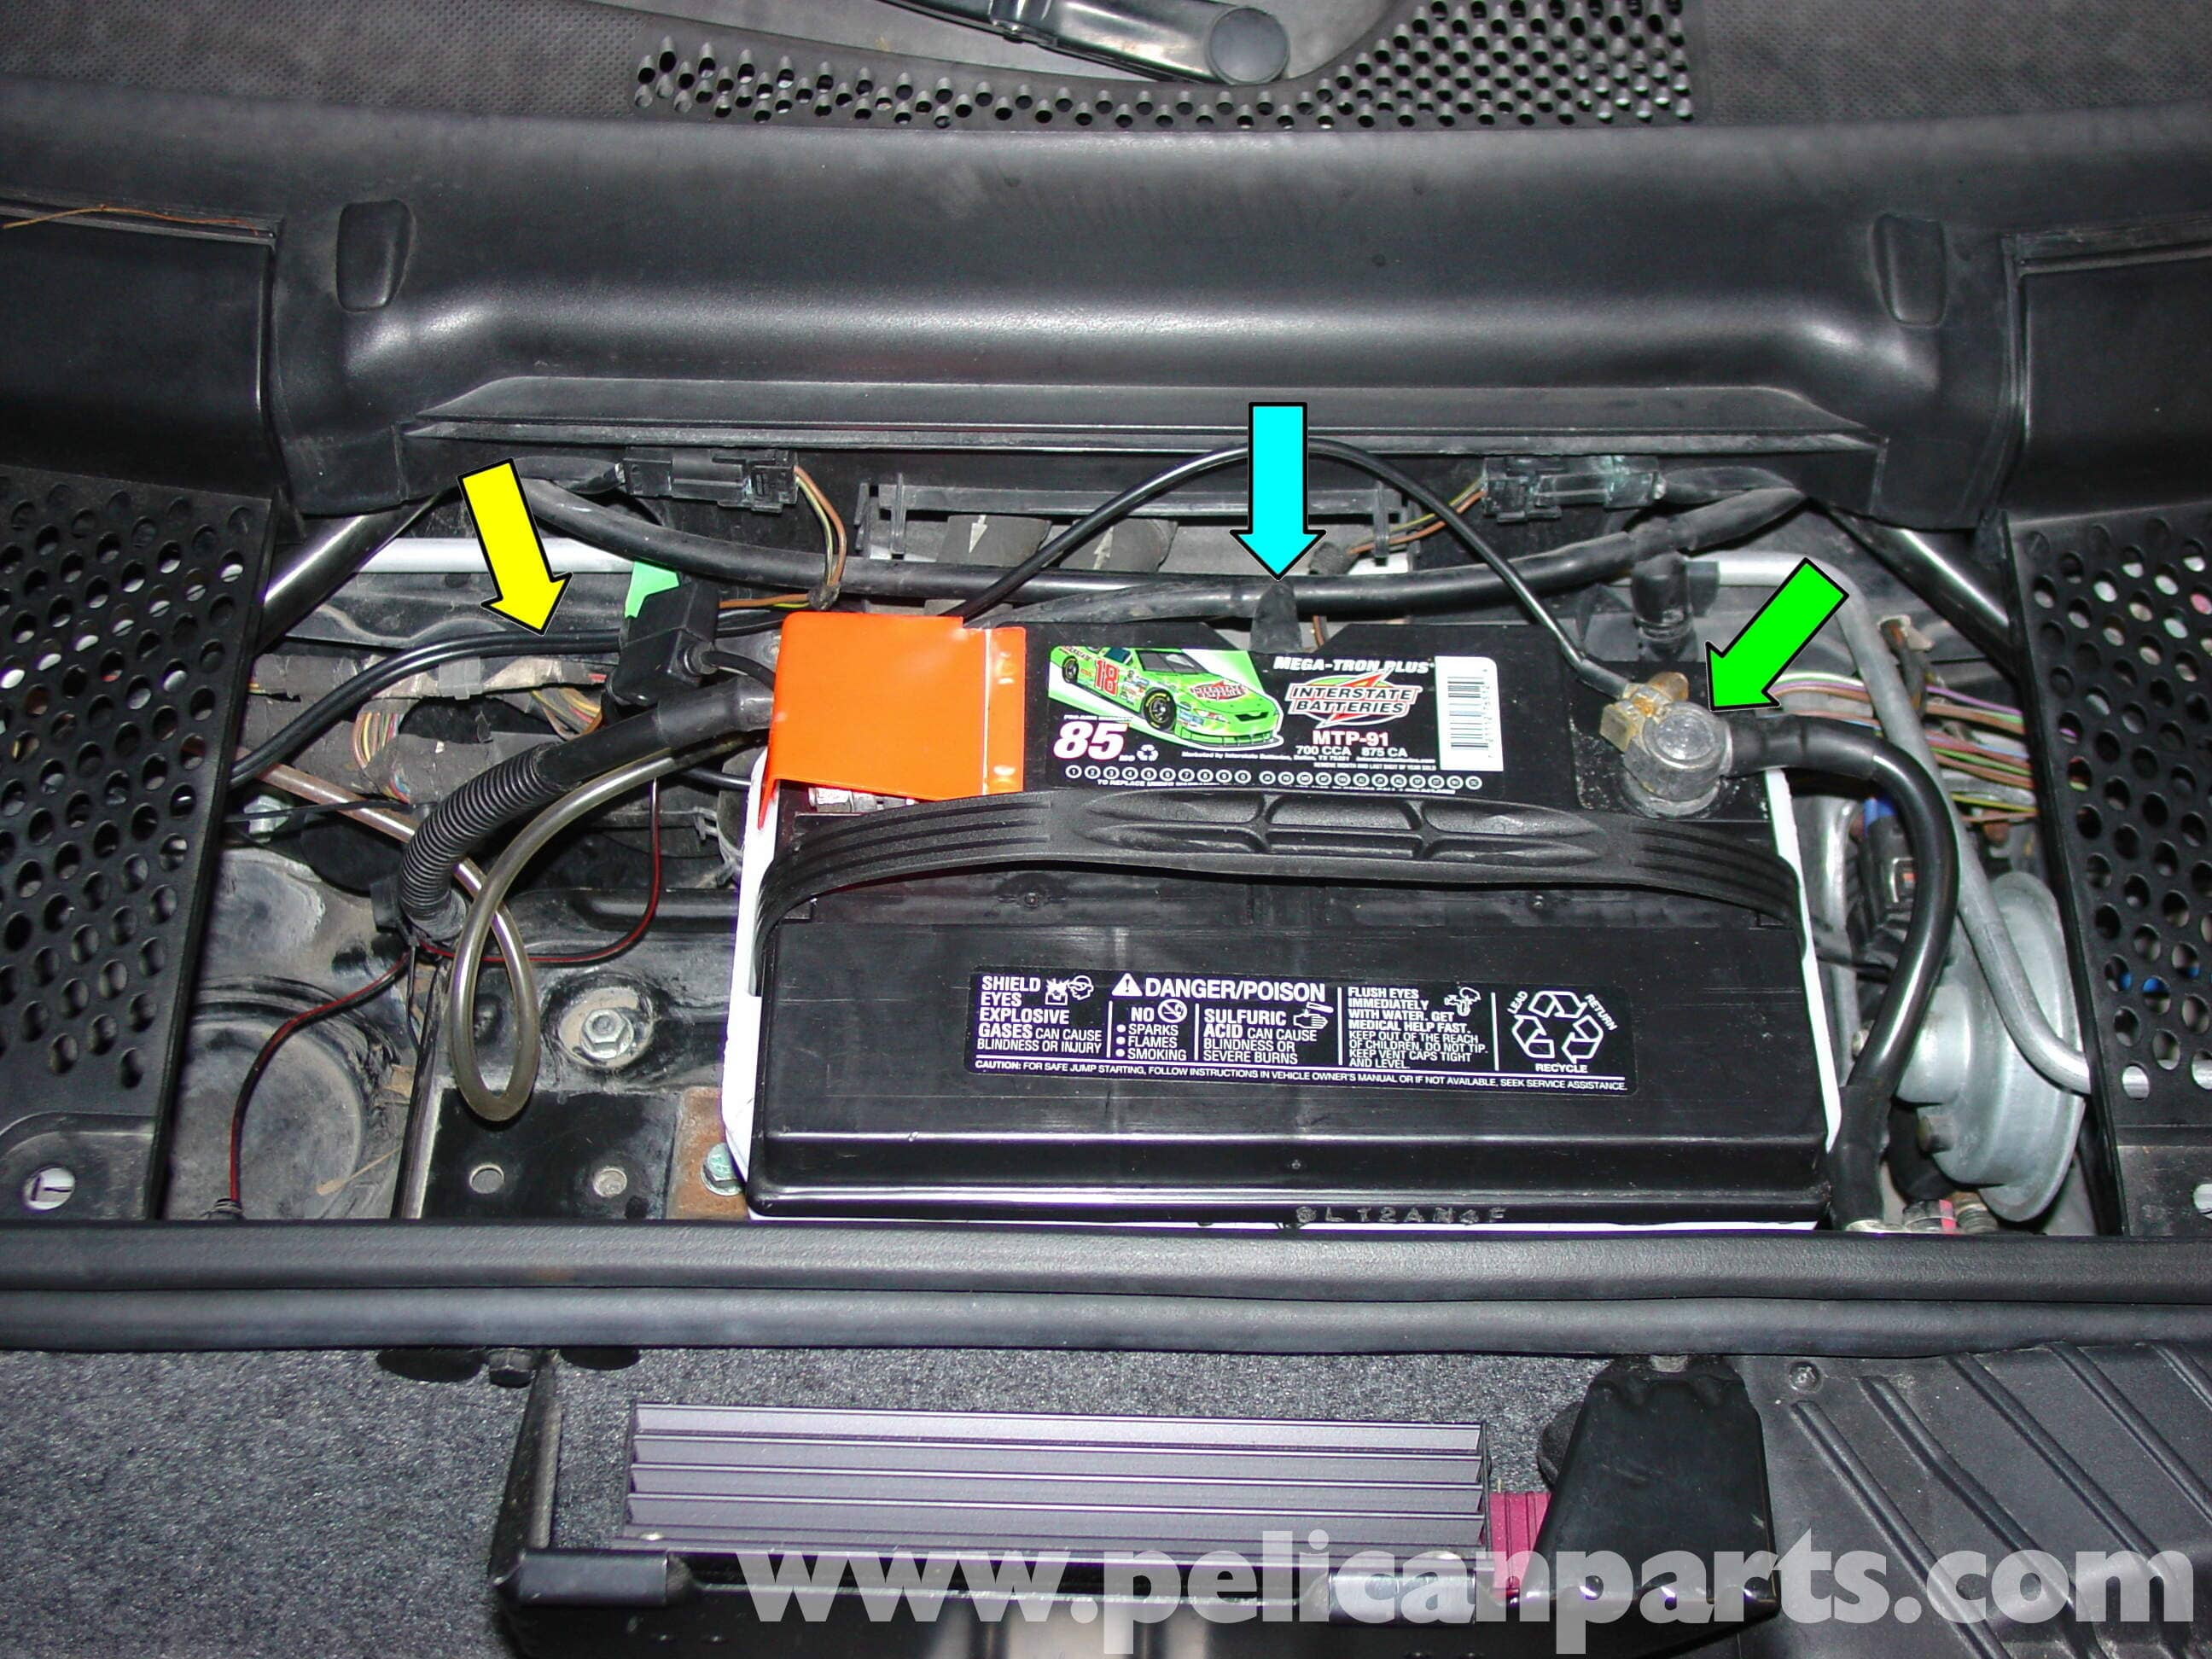 Porsche Boxster 986 Fuse Box Location Auto Electrical Wiring Diagram 2013 Toyota Camry Battery Disconnect Switch Buddy